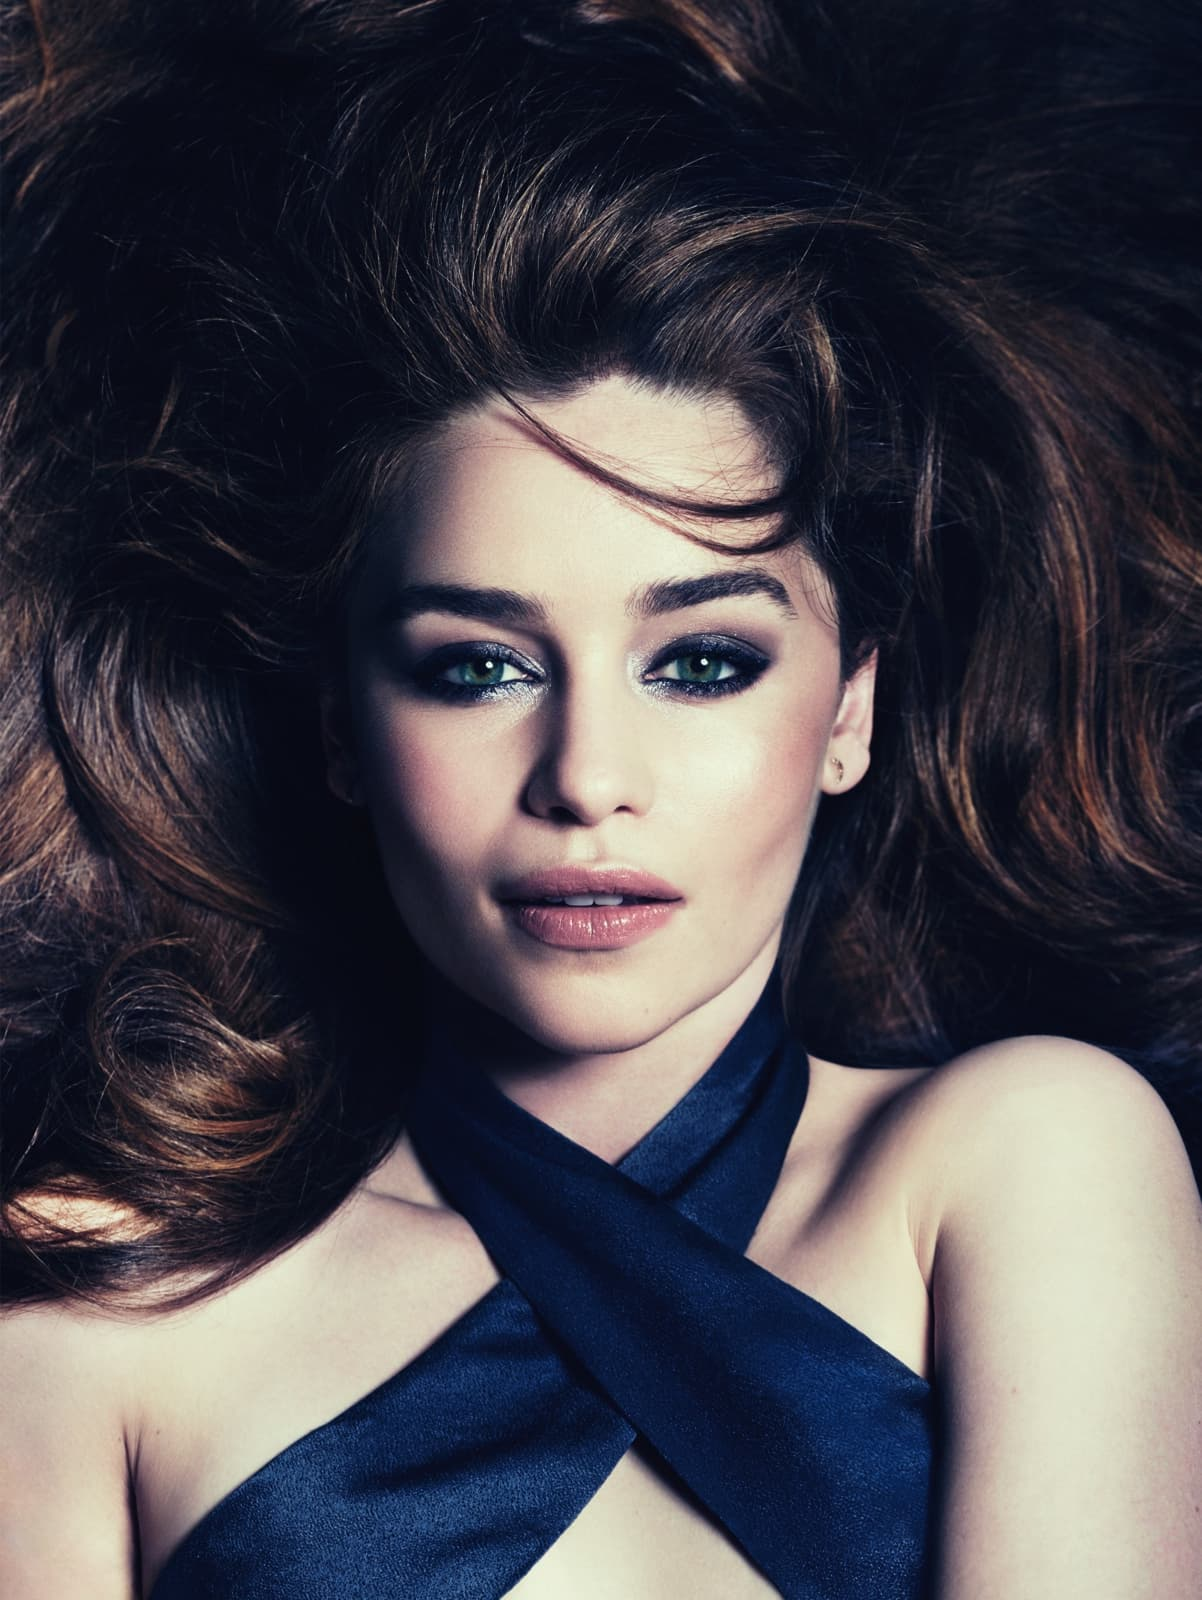 Car Games 2016 >> 15+ Emilia Clarke wallpapers HD High Quality Resolution Download